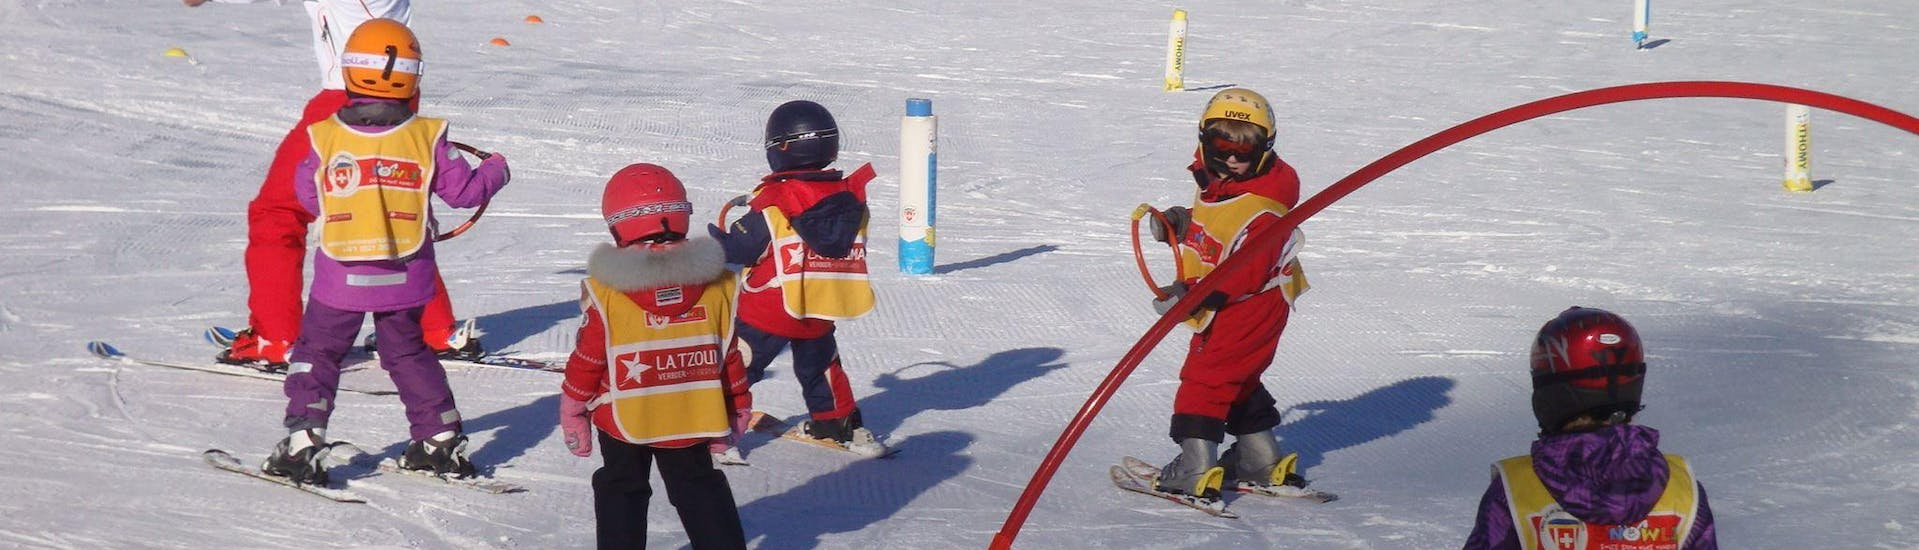 """Kids are learning the basics of skiing thanks to games in the safety of the snowgarden during their Kids Ski Lessons """"Snowgarden"""" (3-6 years) - Afternoon with the Swiss Ski School La Tzoumaz."""